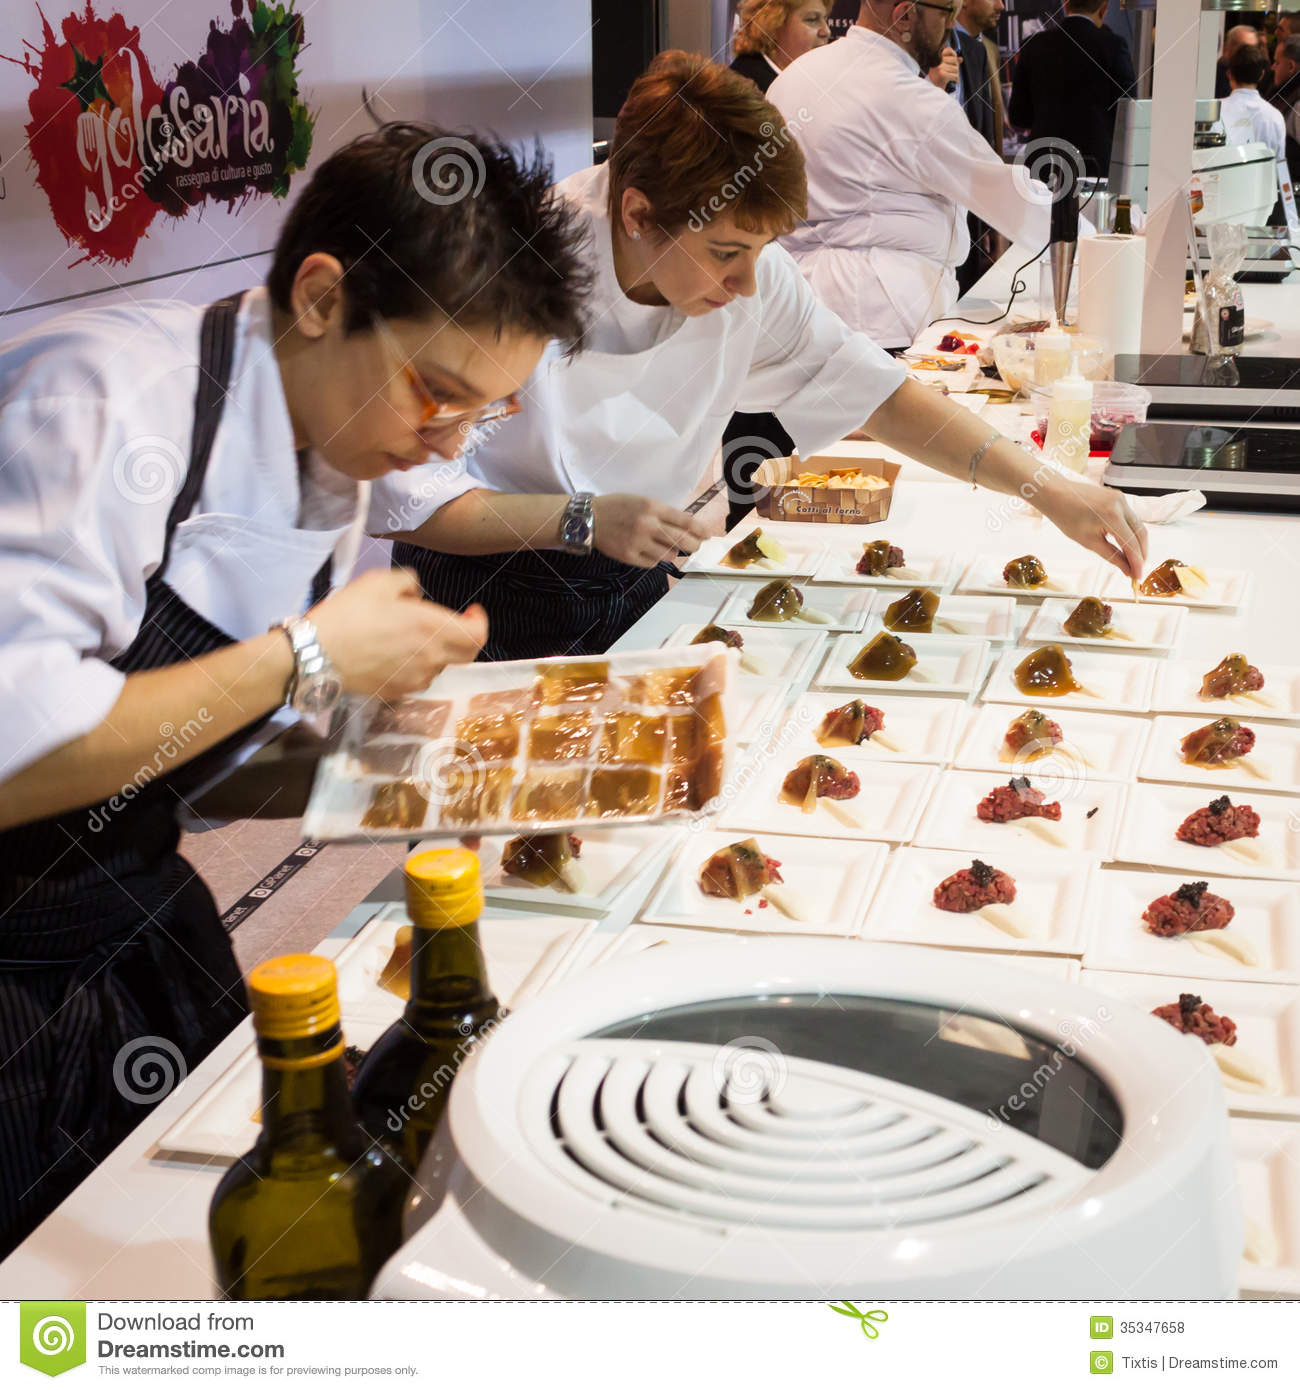 Chef 39 s assistants working at golosaria 2013 in milan for Assistant cuisine